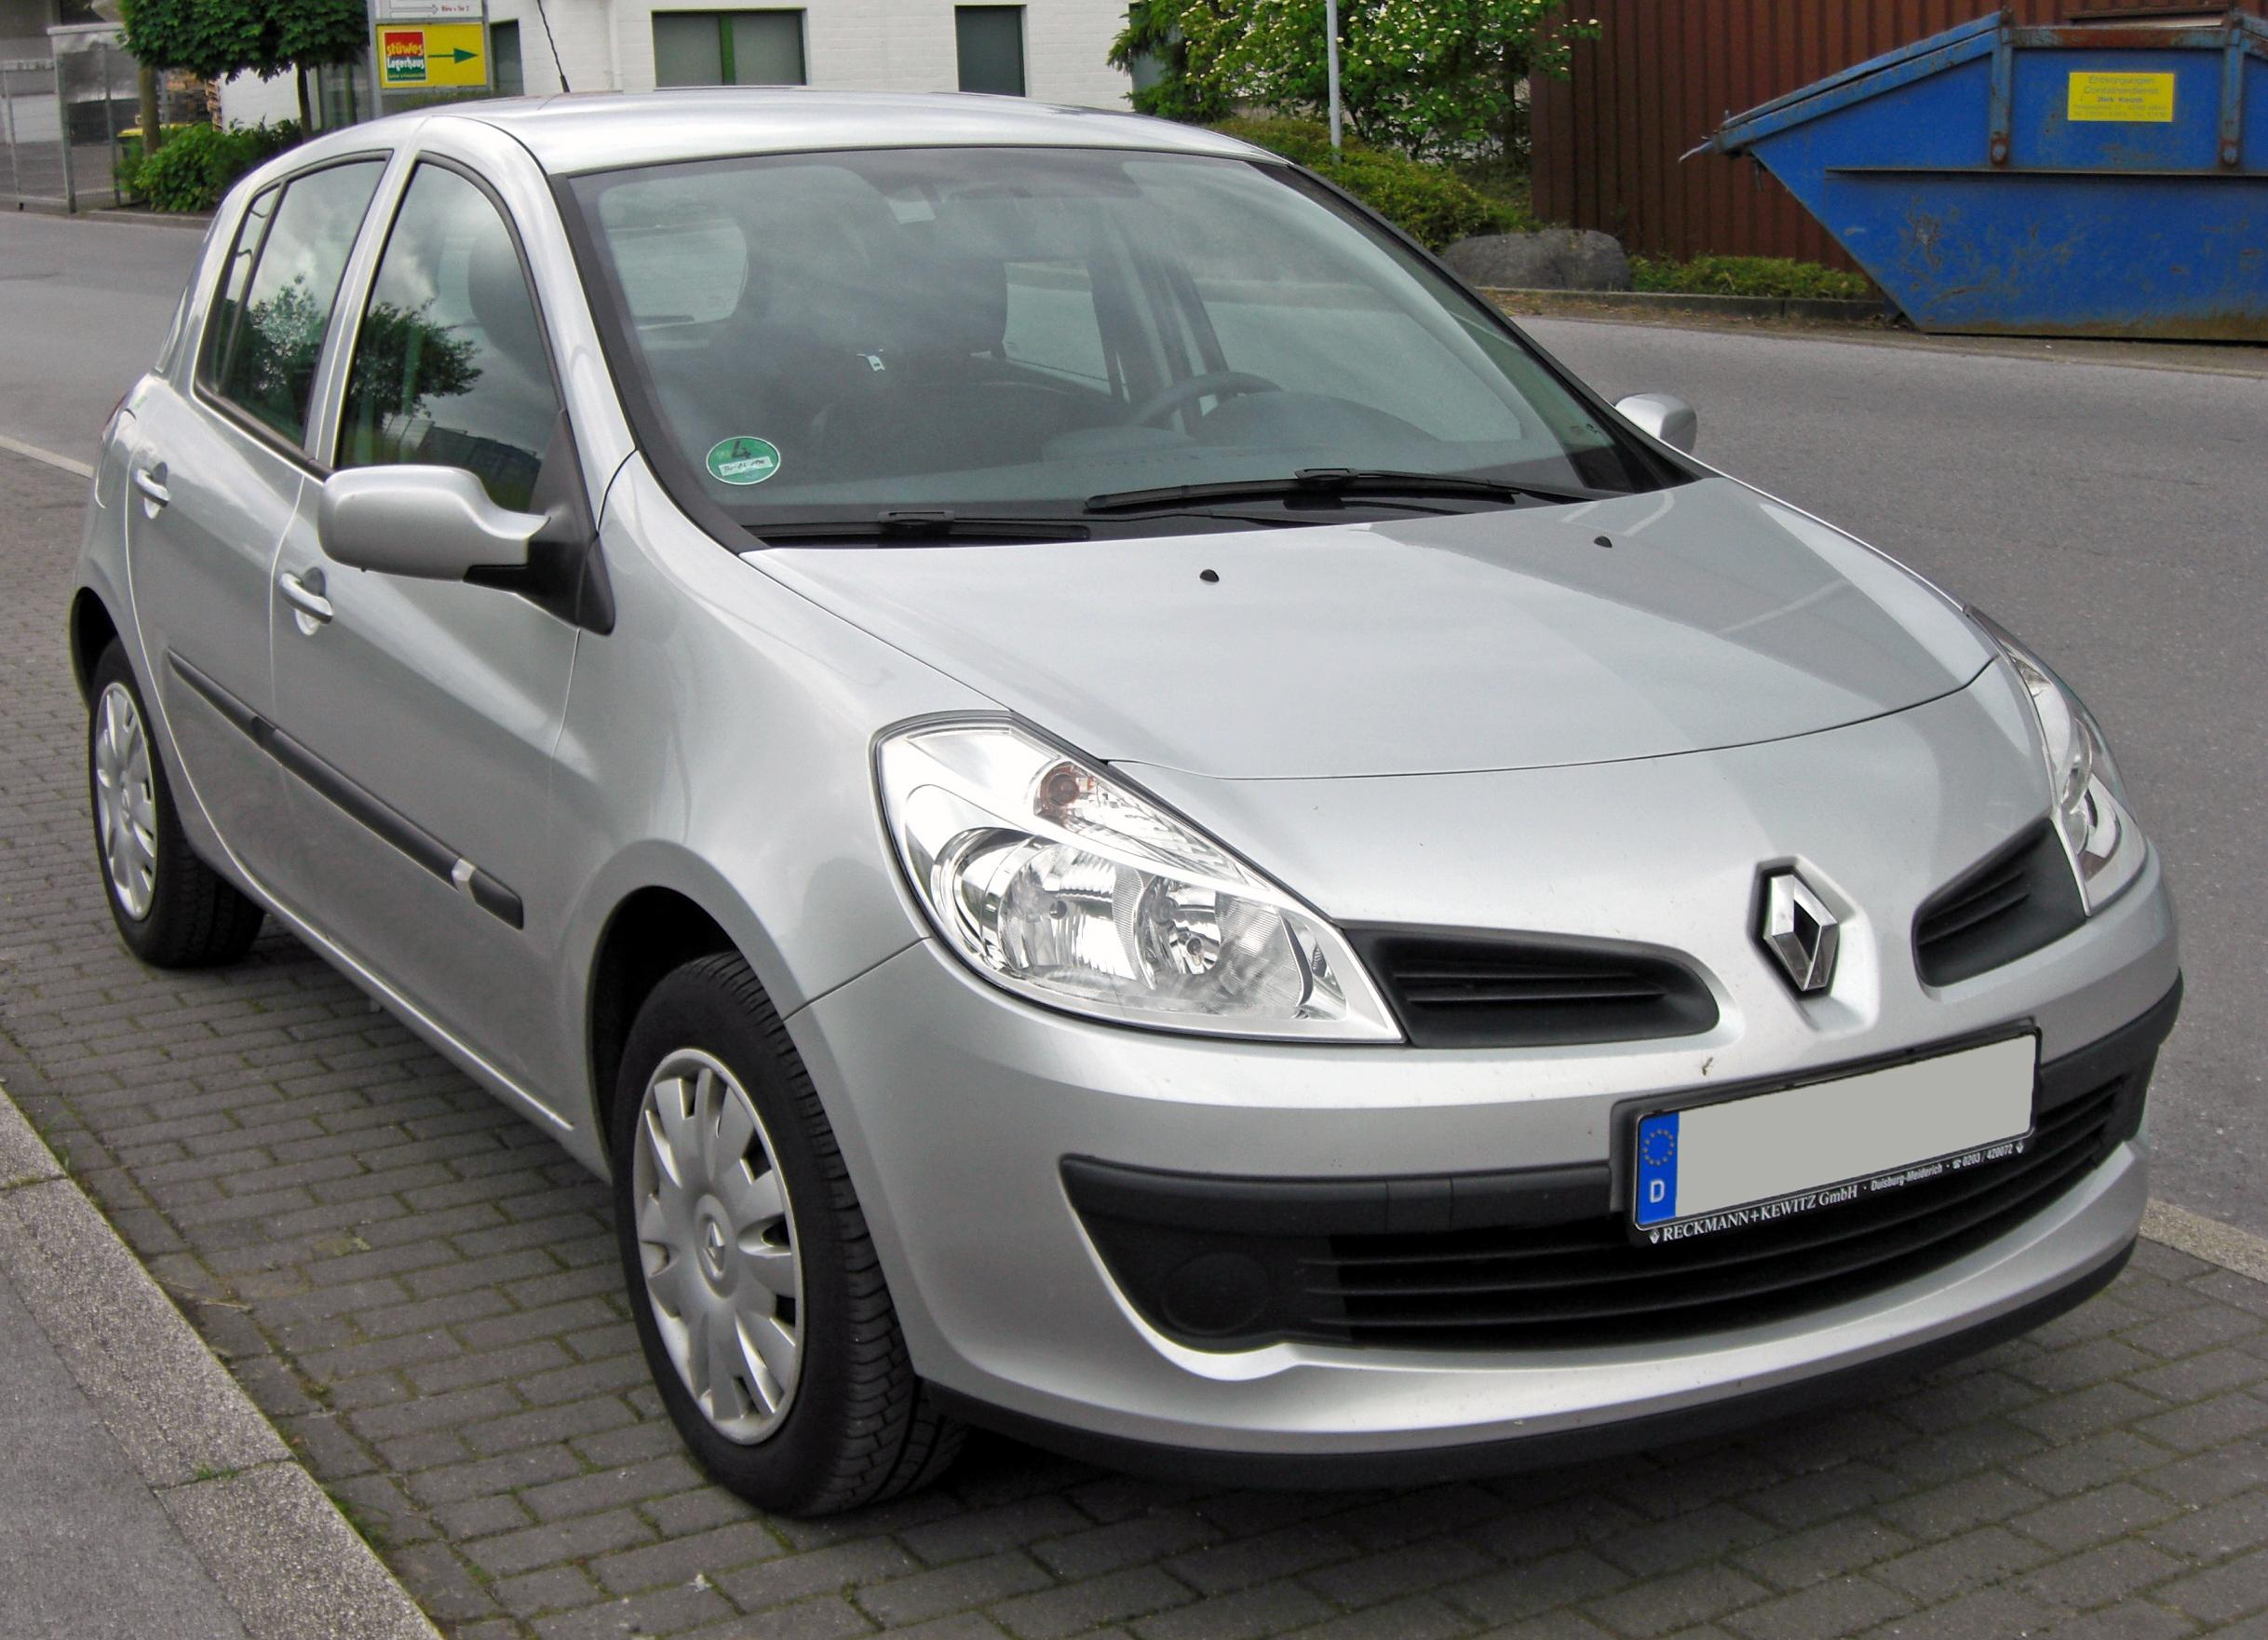 datei renault clio iii 20090527 front jpg wikipedia. Black Bedroom Furniture Sets. Home Design Ideas